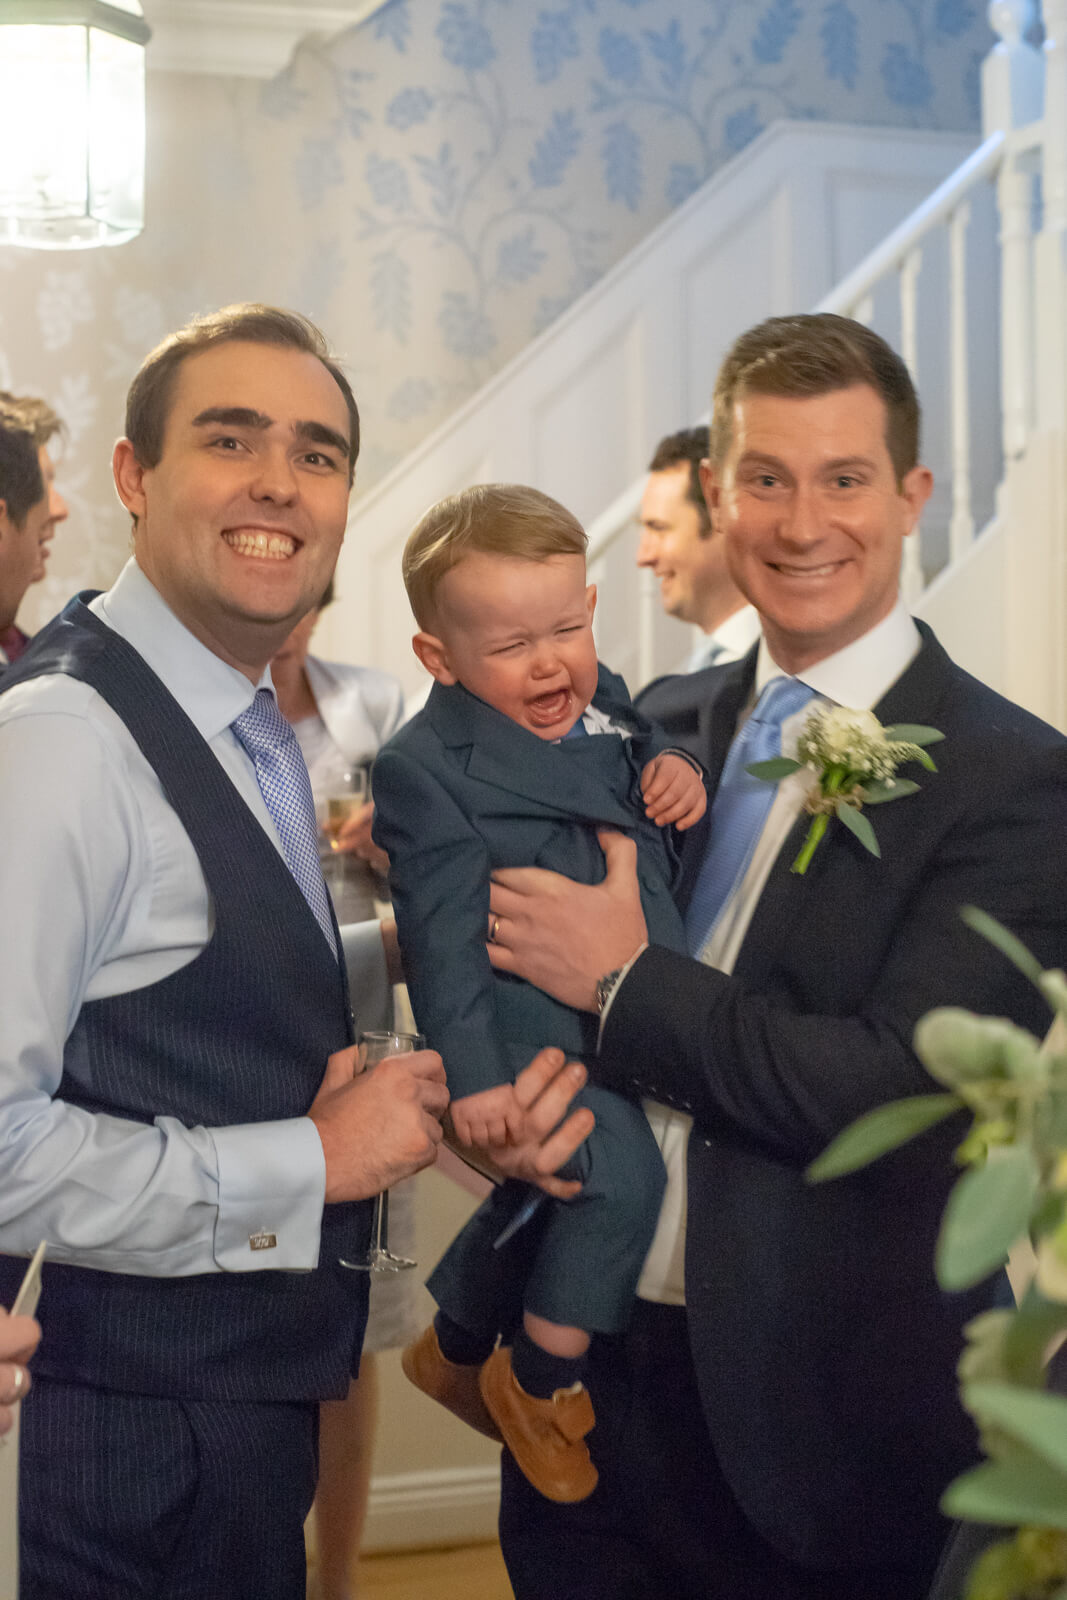 Groom and best man grin at the camera while young toddler between them screams